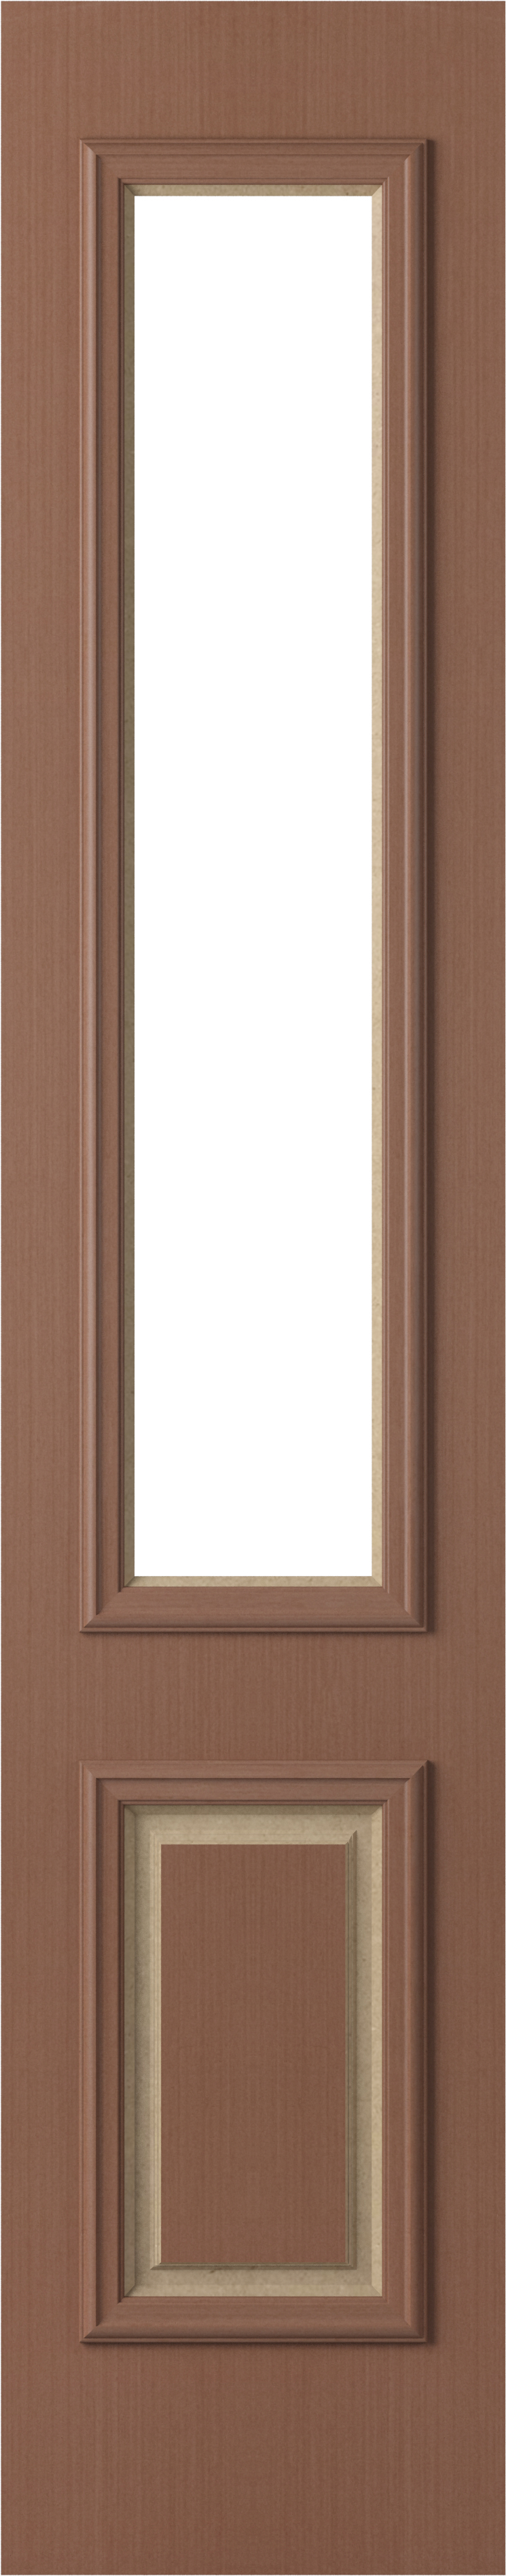 Corinthian Classic Vertical Grain Rosewood Decorative Exterior Sidelight 1 Panel Solid/1 Light Panel